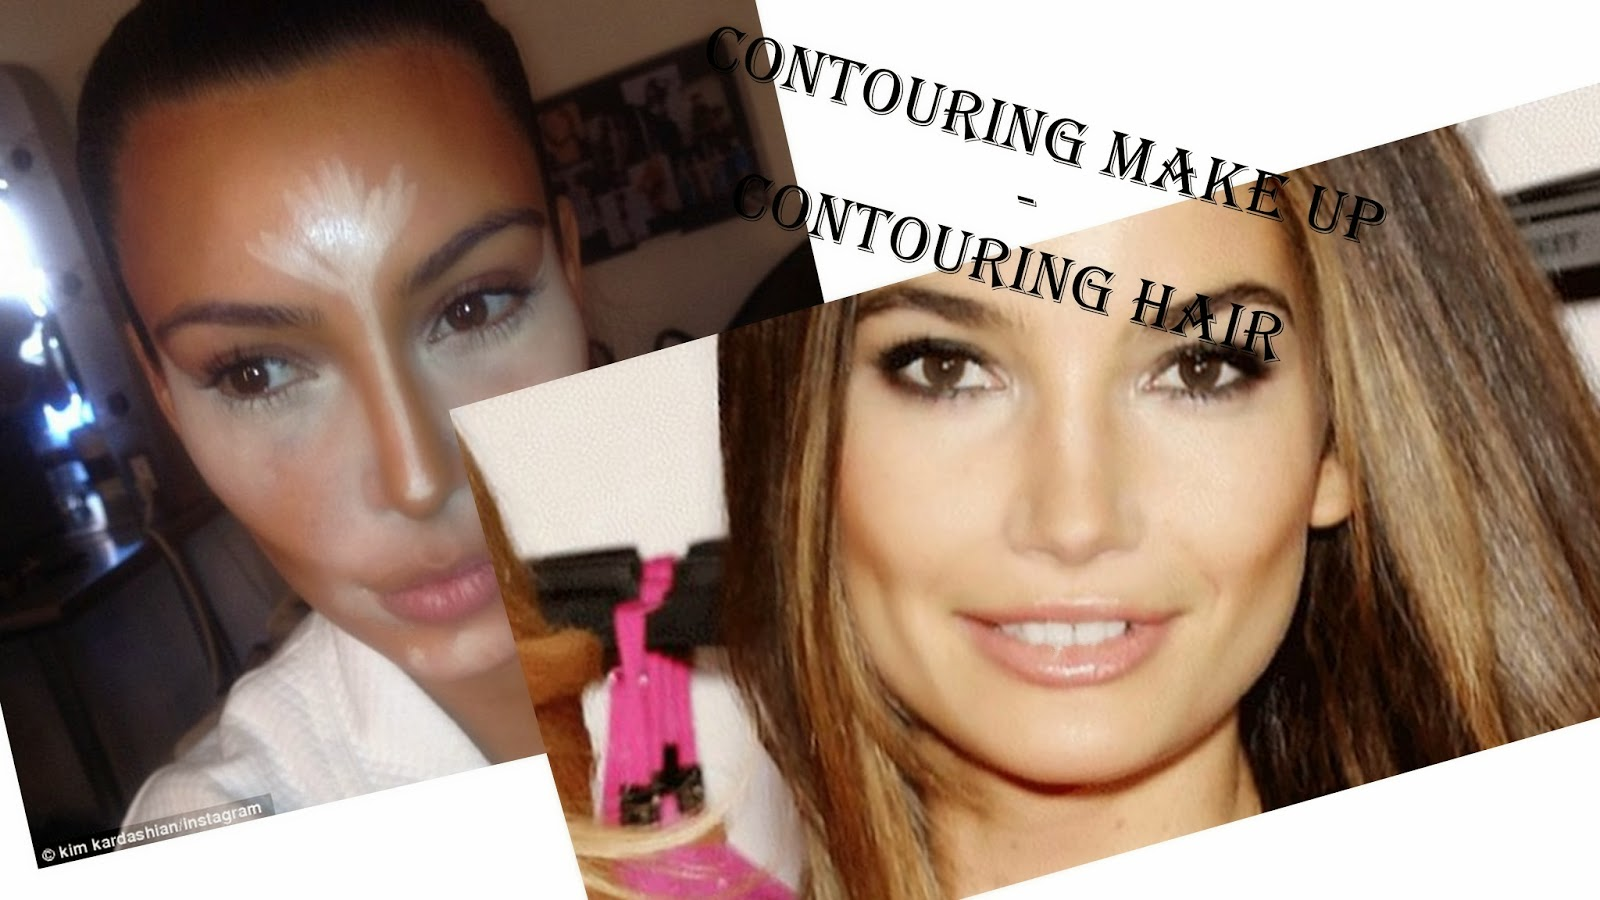 contouring-make-up-contouring-hair-miss-beaute-addict